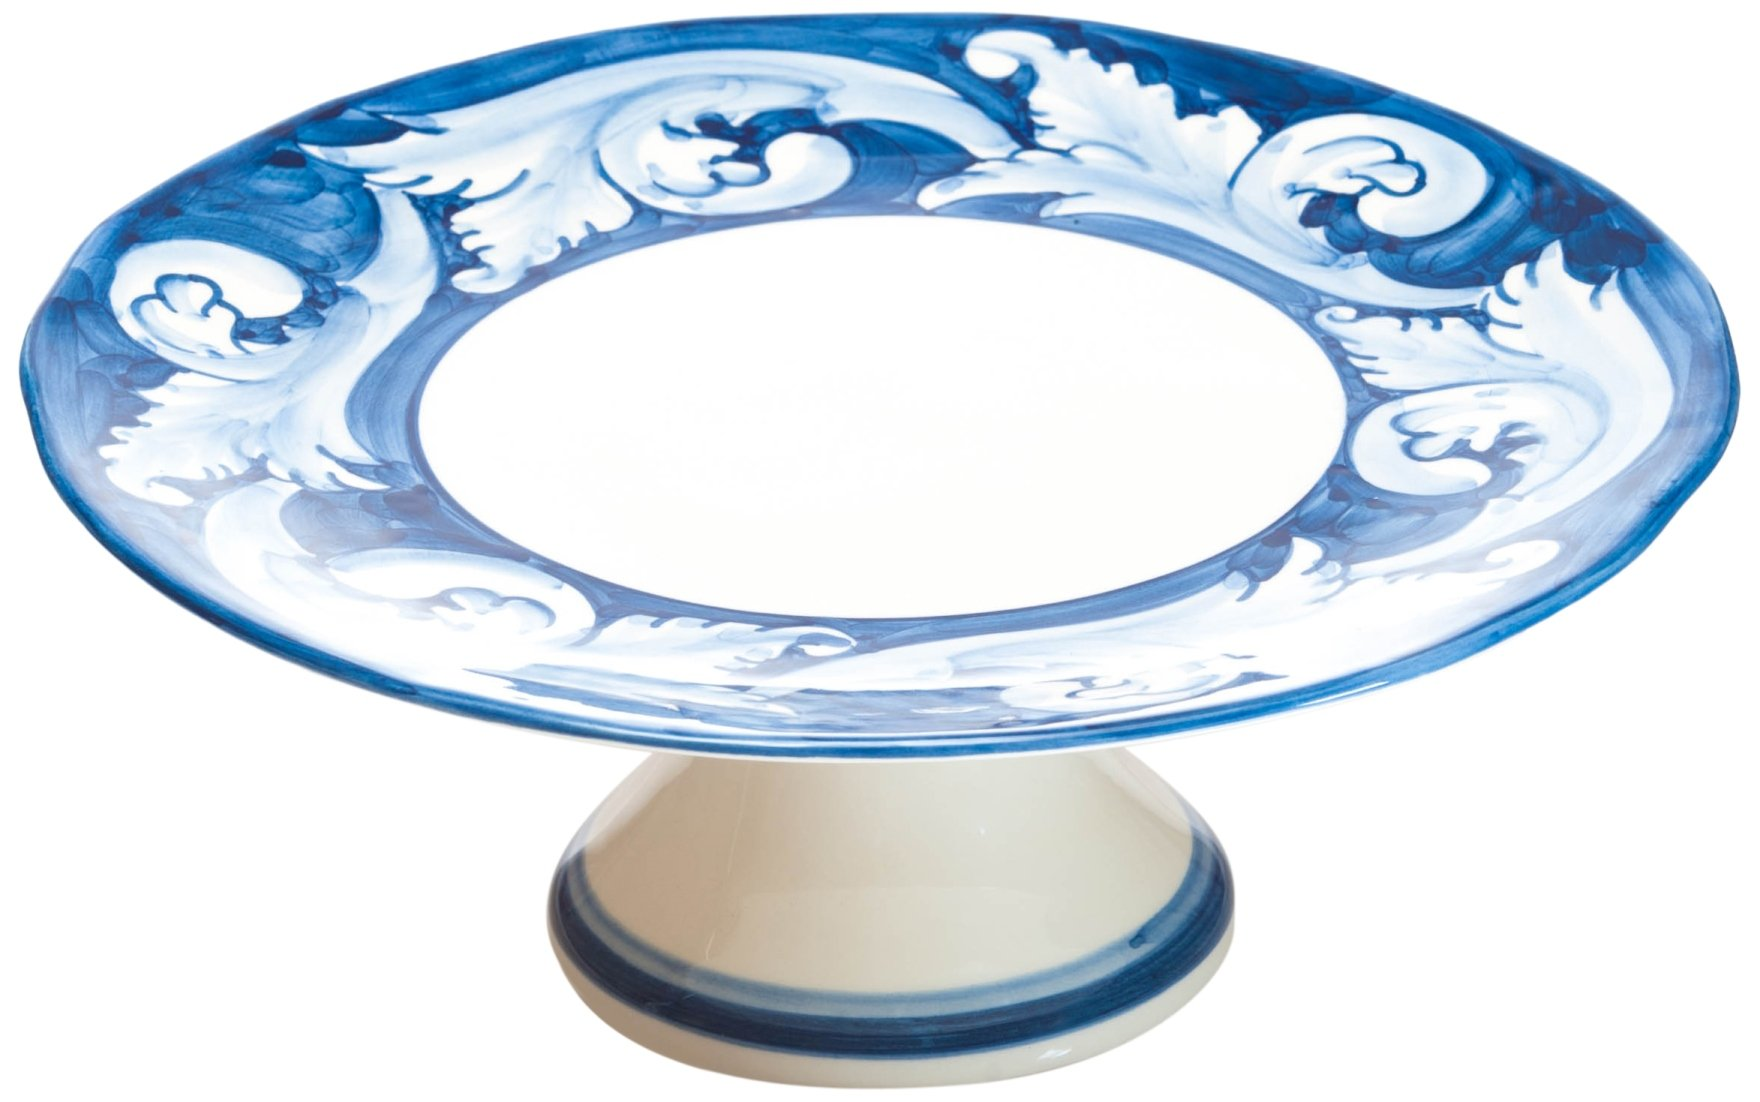 Abigails Elena Cake Plate, 11.75 by 11.75 by 4.25-Inch